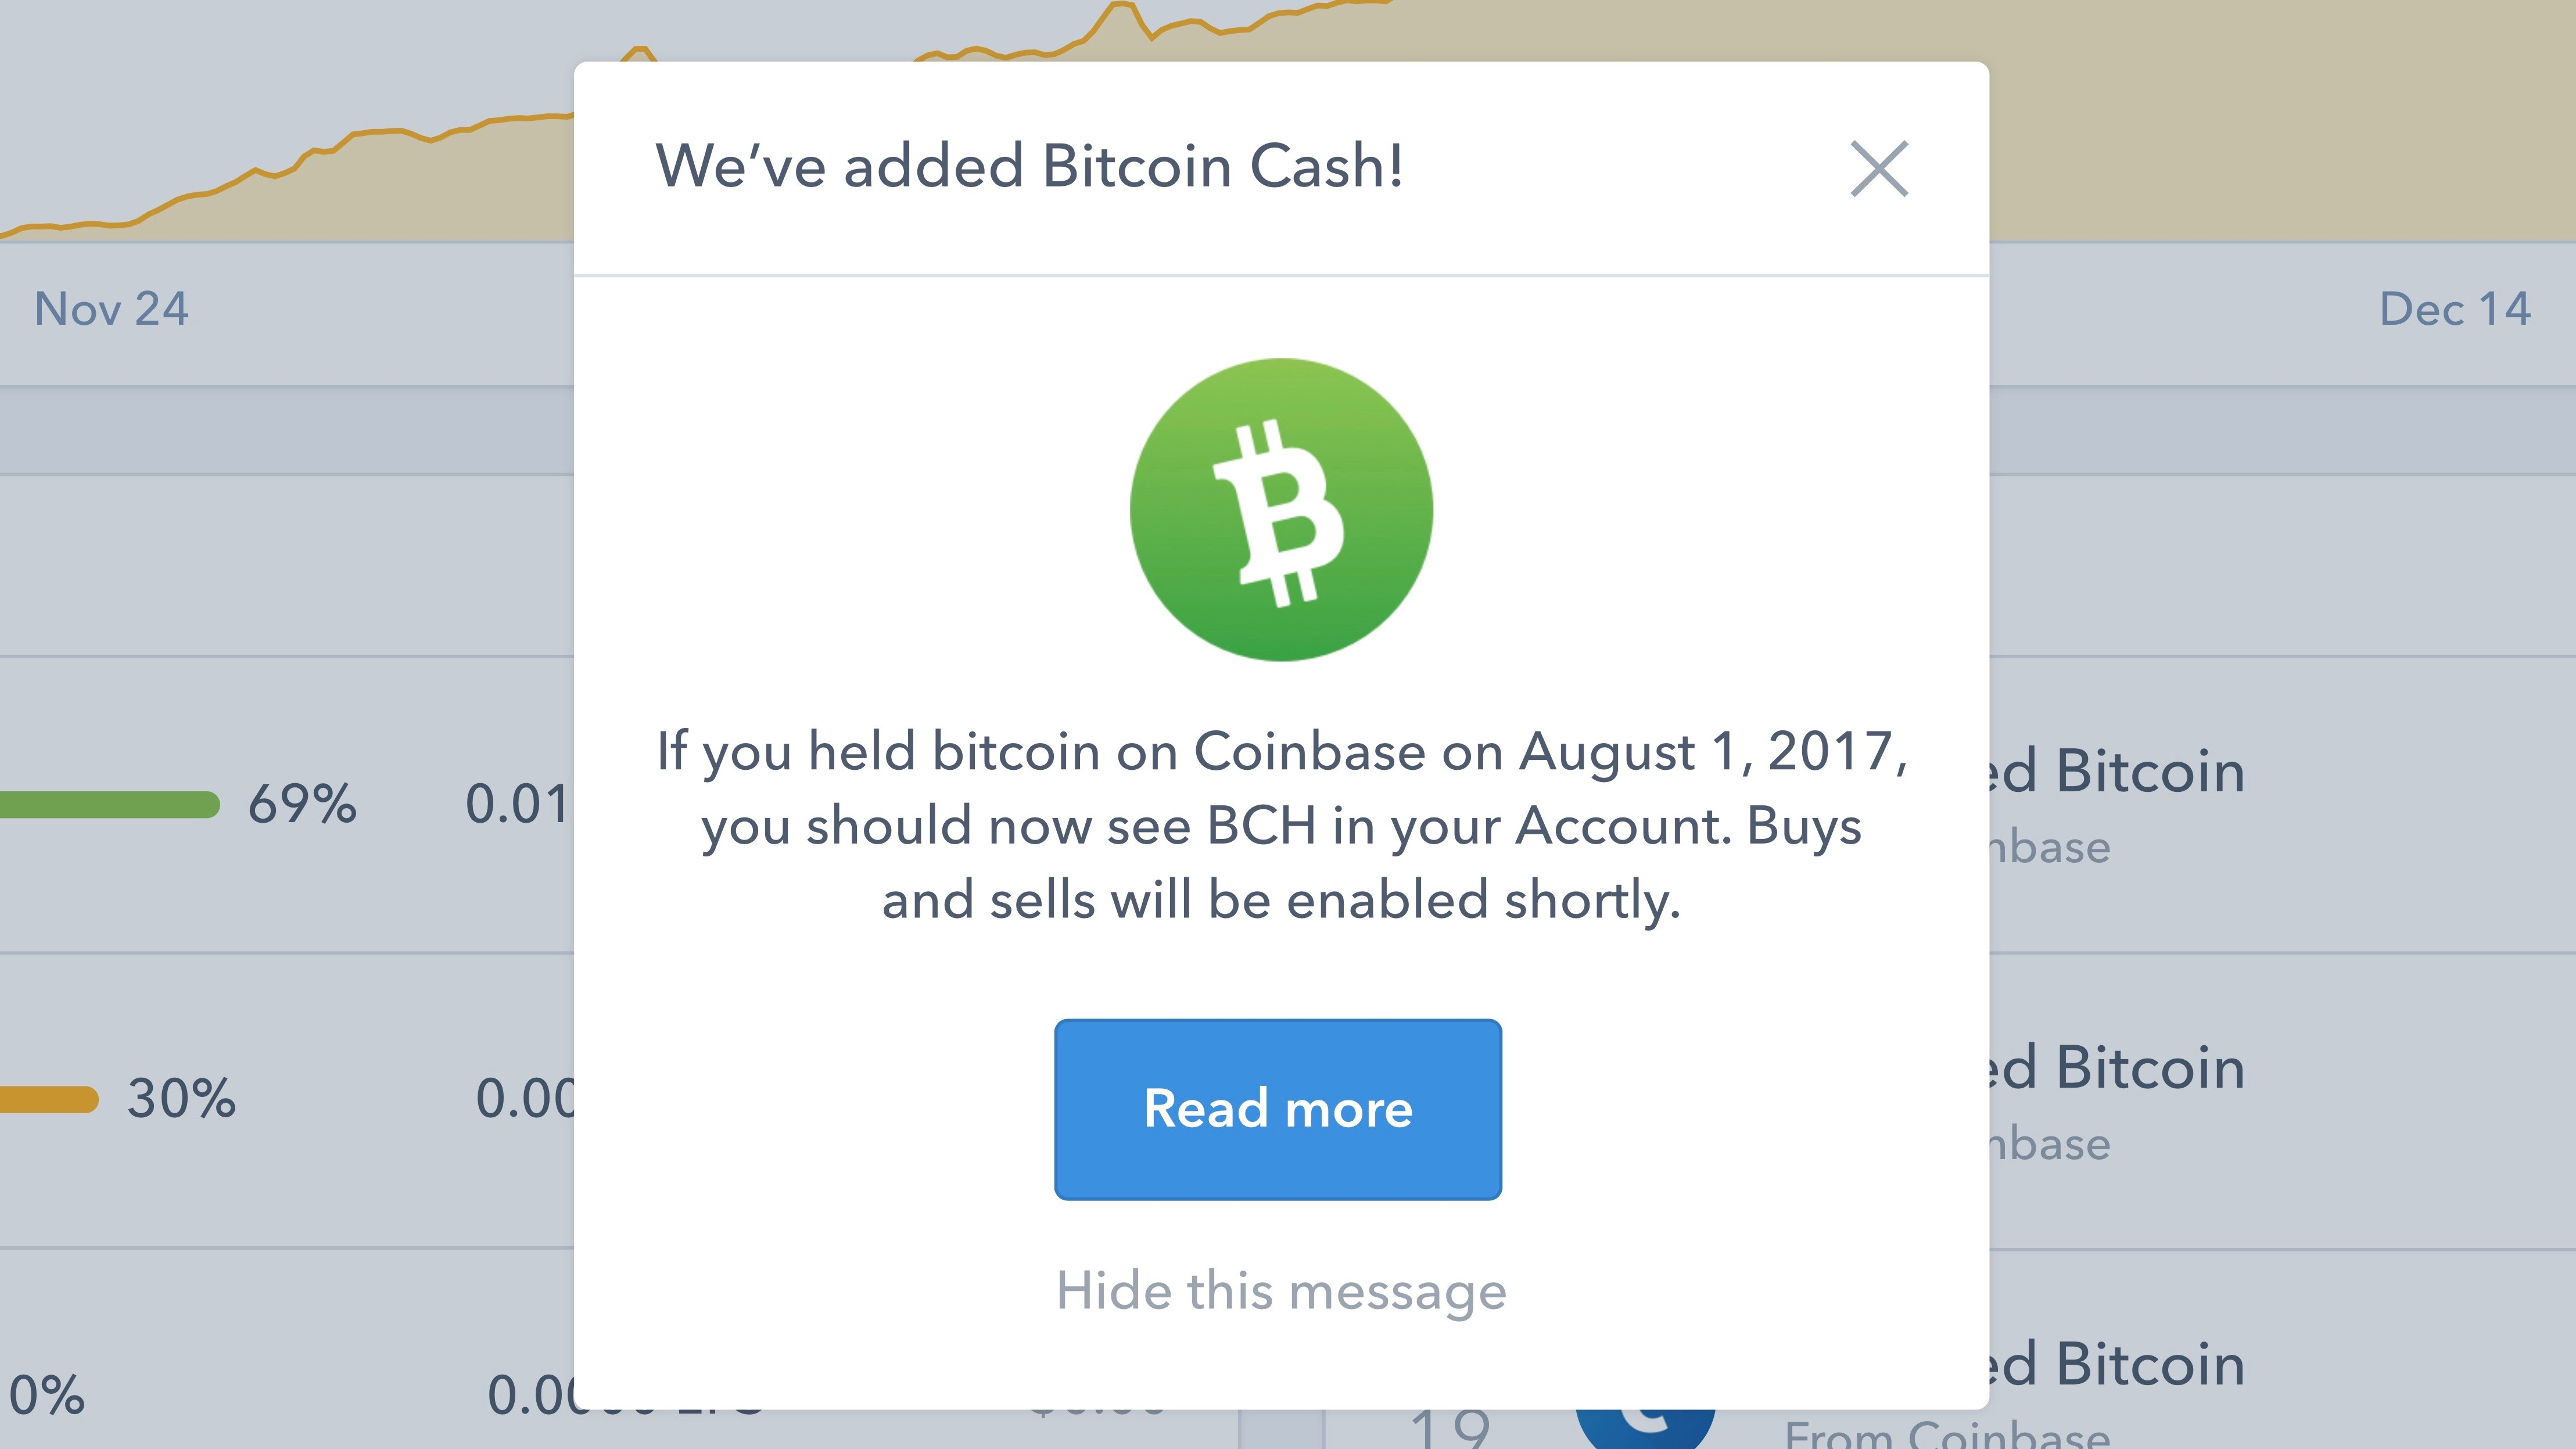 Coinbase for iOS adding support for buying & selling Bitcoin Cash, sending BTC down 10%